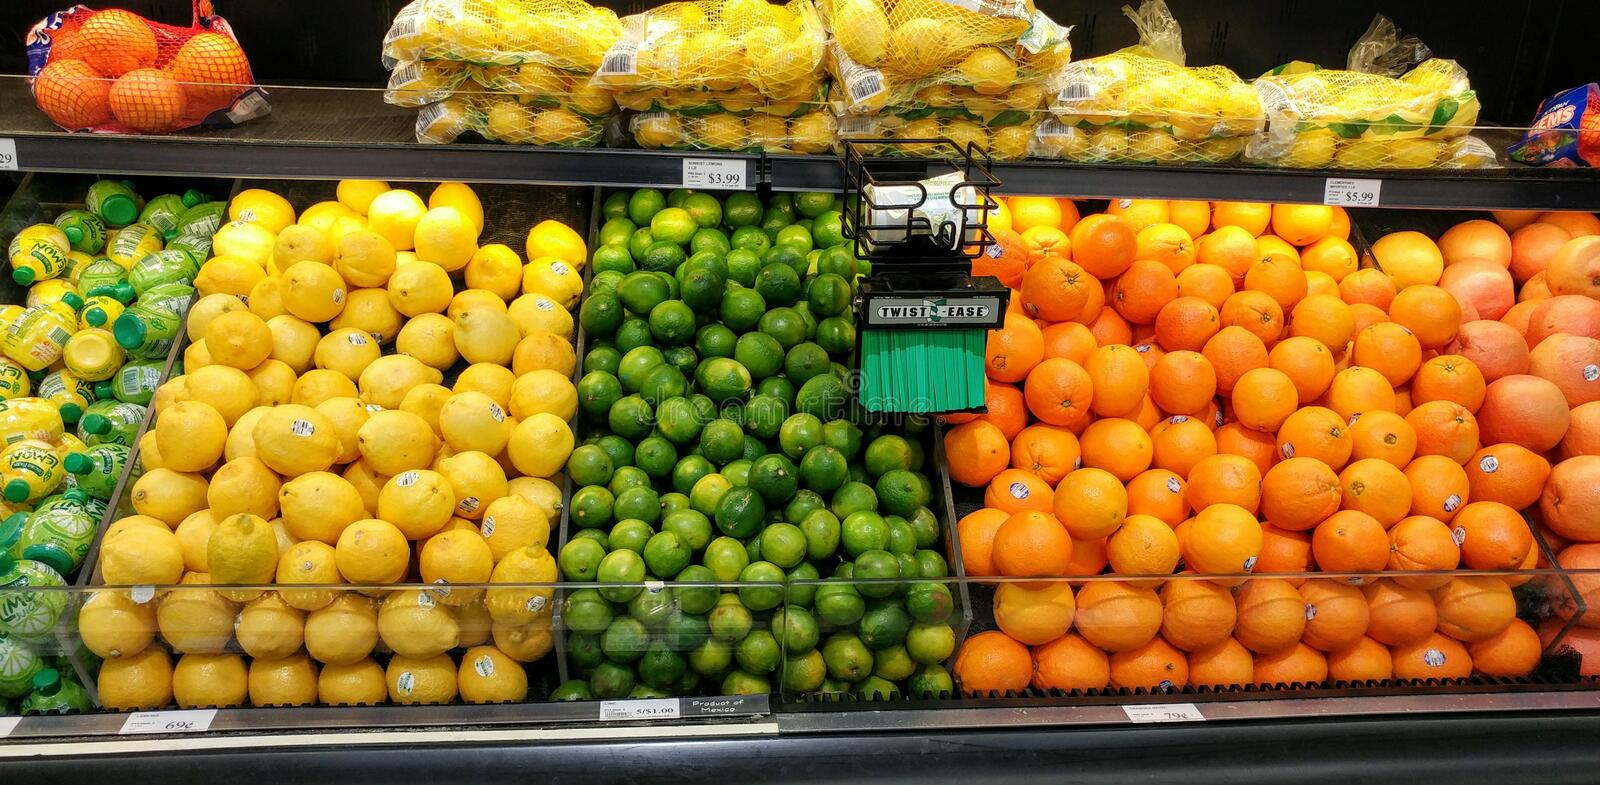 Citrus Display, Produce, at Grocery Store royalty free stock photo